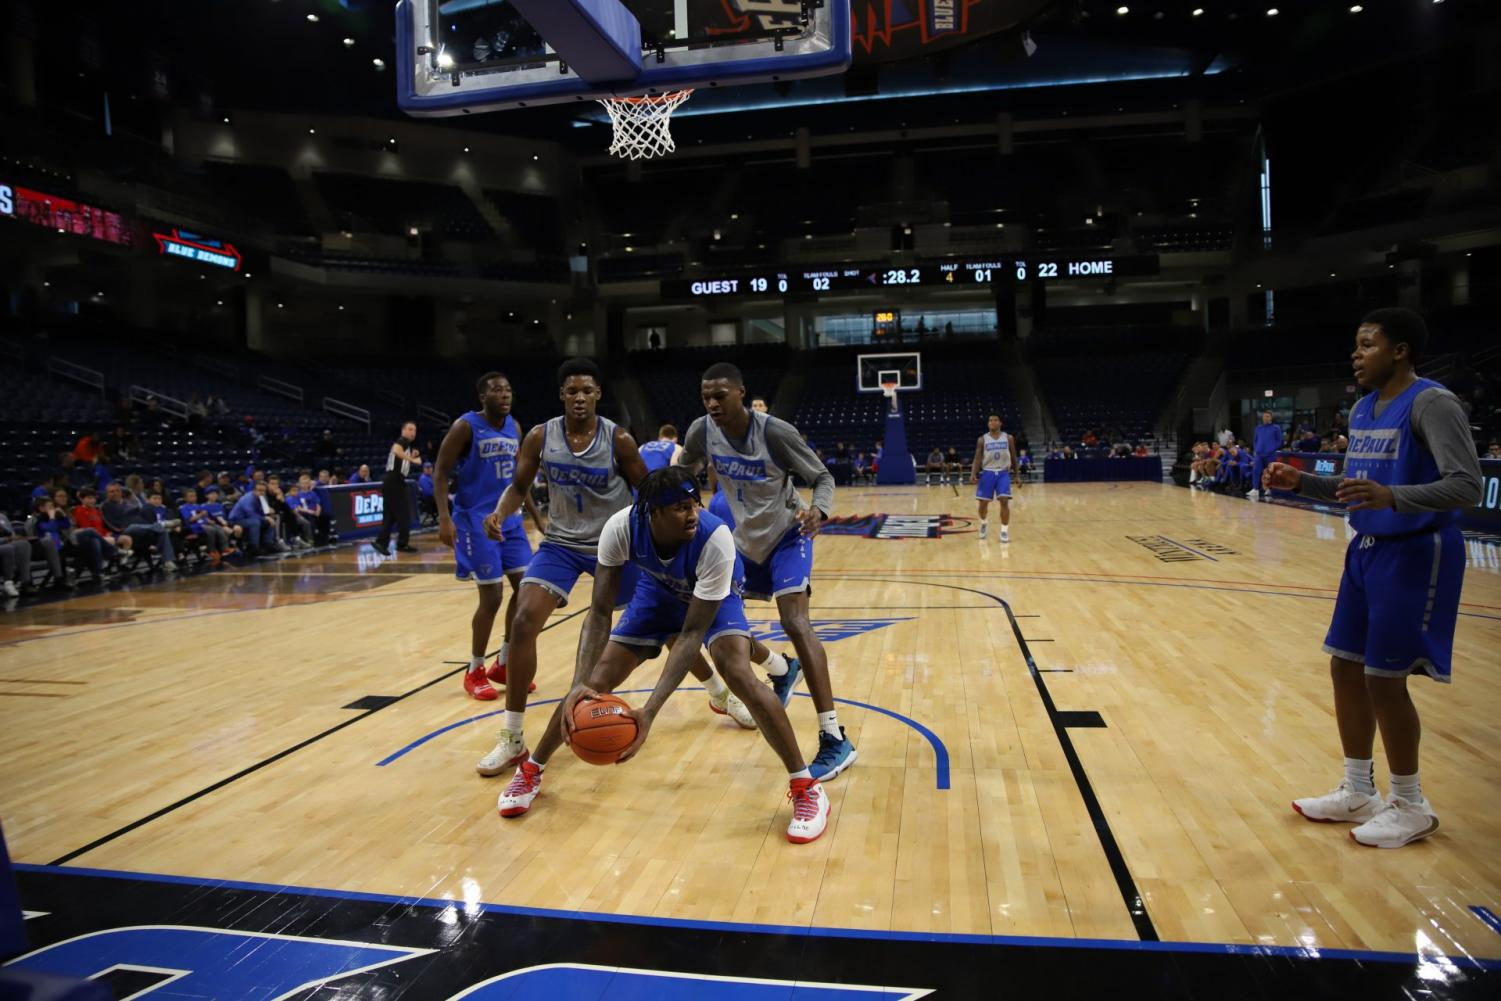 DePaul sophomore forward Darious Hall comes down with a rebound in the Blue Demons' open scrimmage on Saturday.